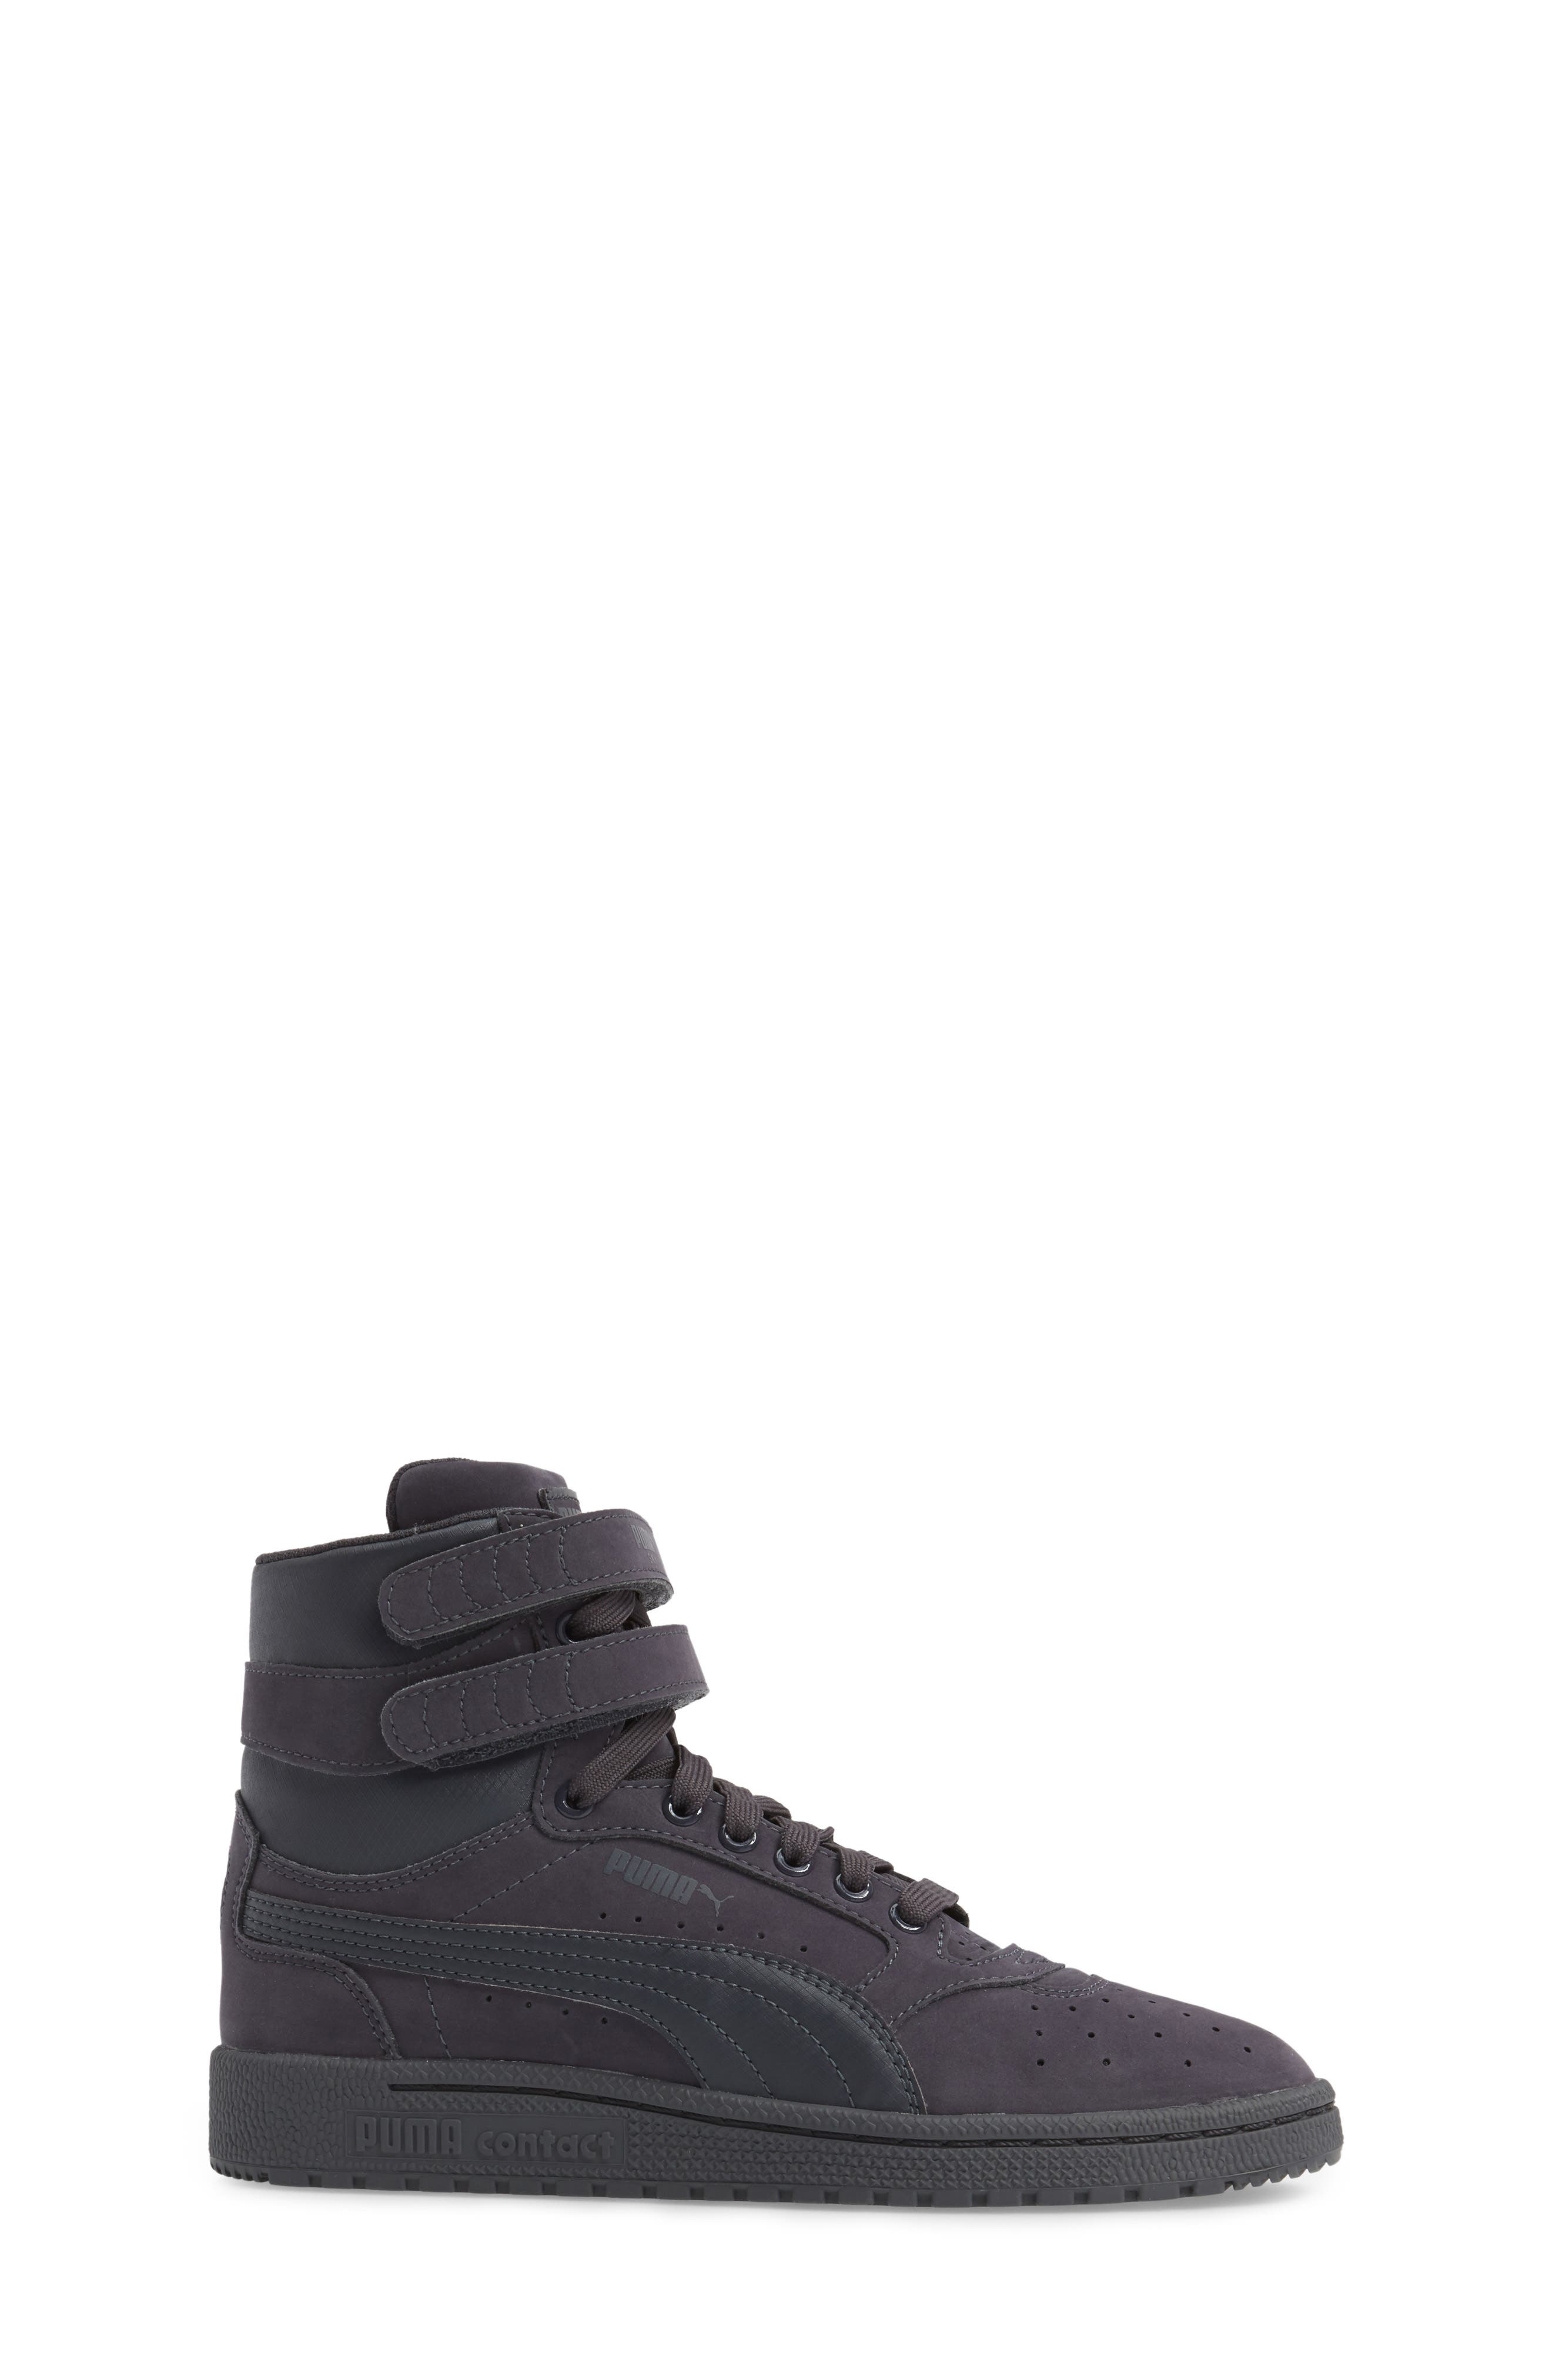 Ski II High Top Sneaker,                             Alternate thumbnail 5, color,